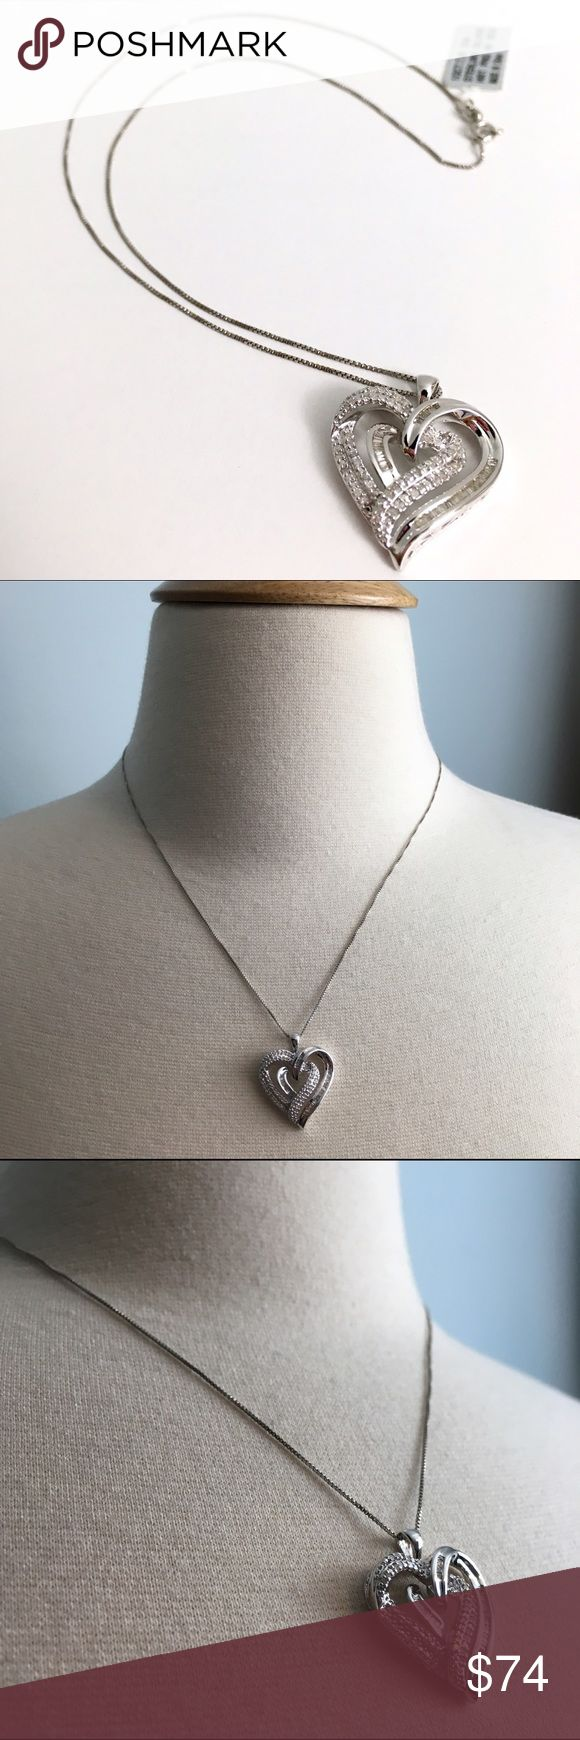 Diamond and Sterling Silver Heart Pendant Necklace This double heart necklace is embellished with 1/3 karat, total weight, of diamonds. The chain and the charm are Sterling Silver Jewelry Necklaces